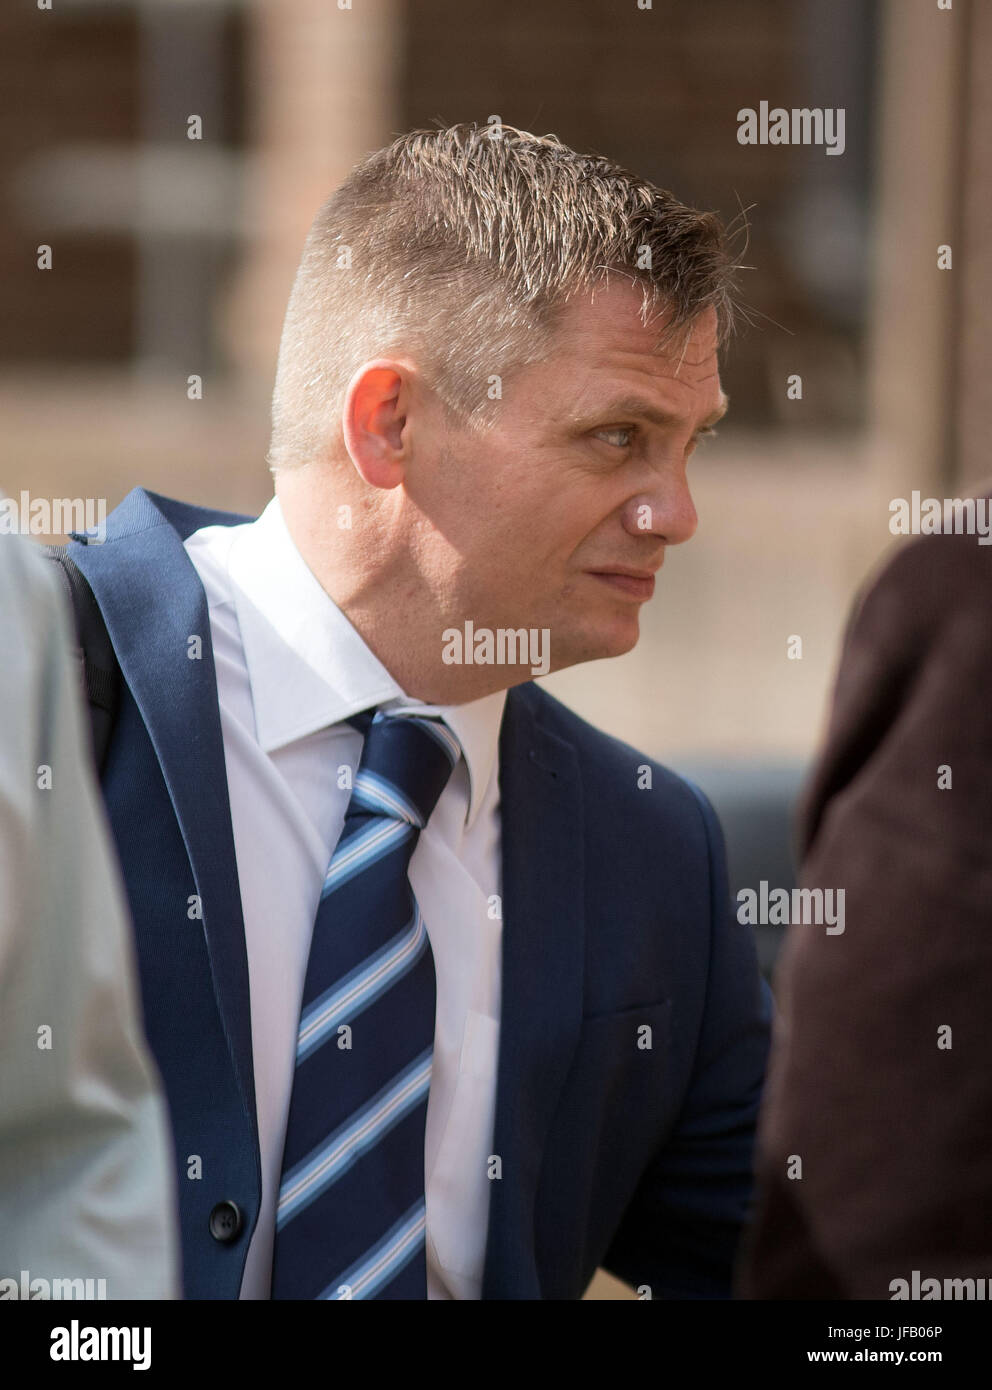 PC Keith Burgess arrives at Guildford Crown Court in Guildford, to be sentenced for misconduct in public office. Stock Photo